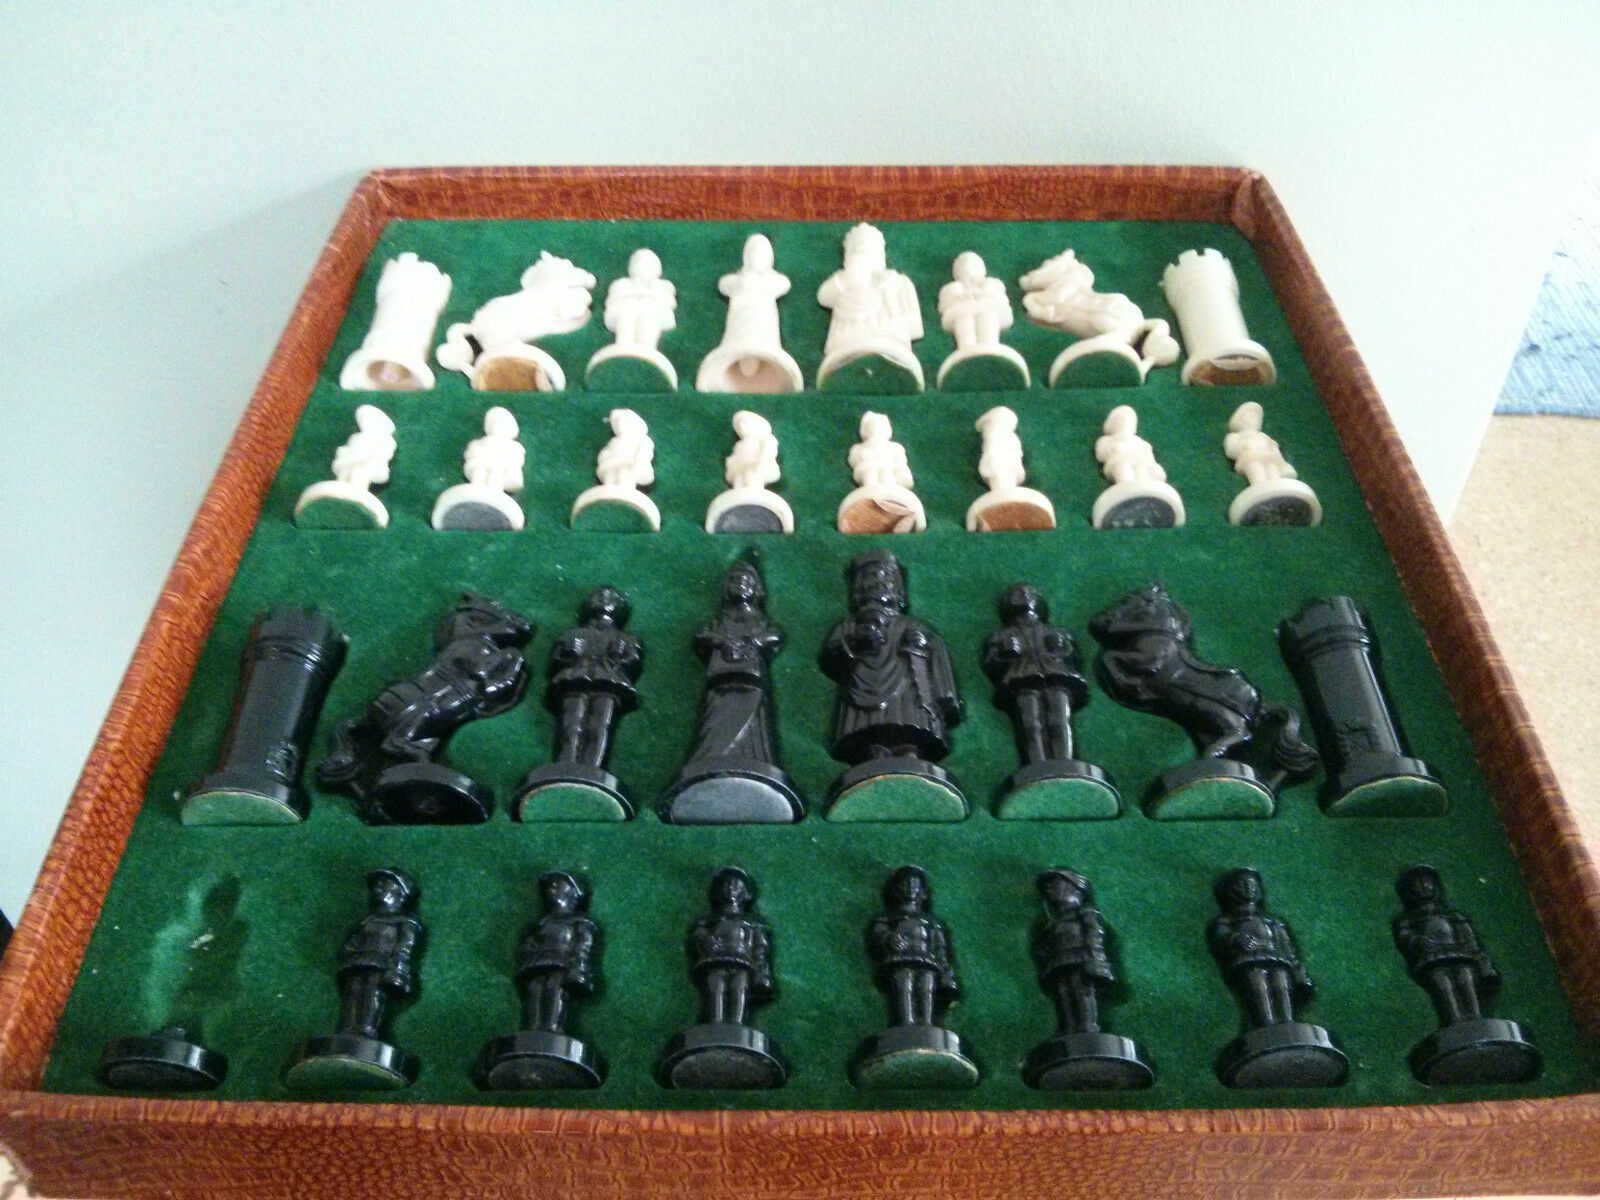 Vintage plastic chess set in original box with 13  board